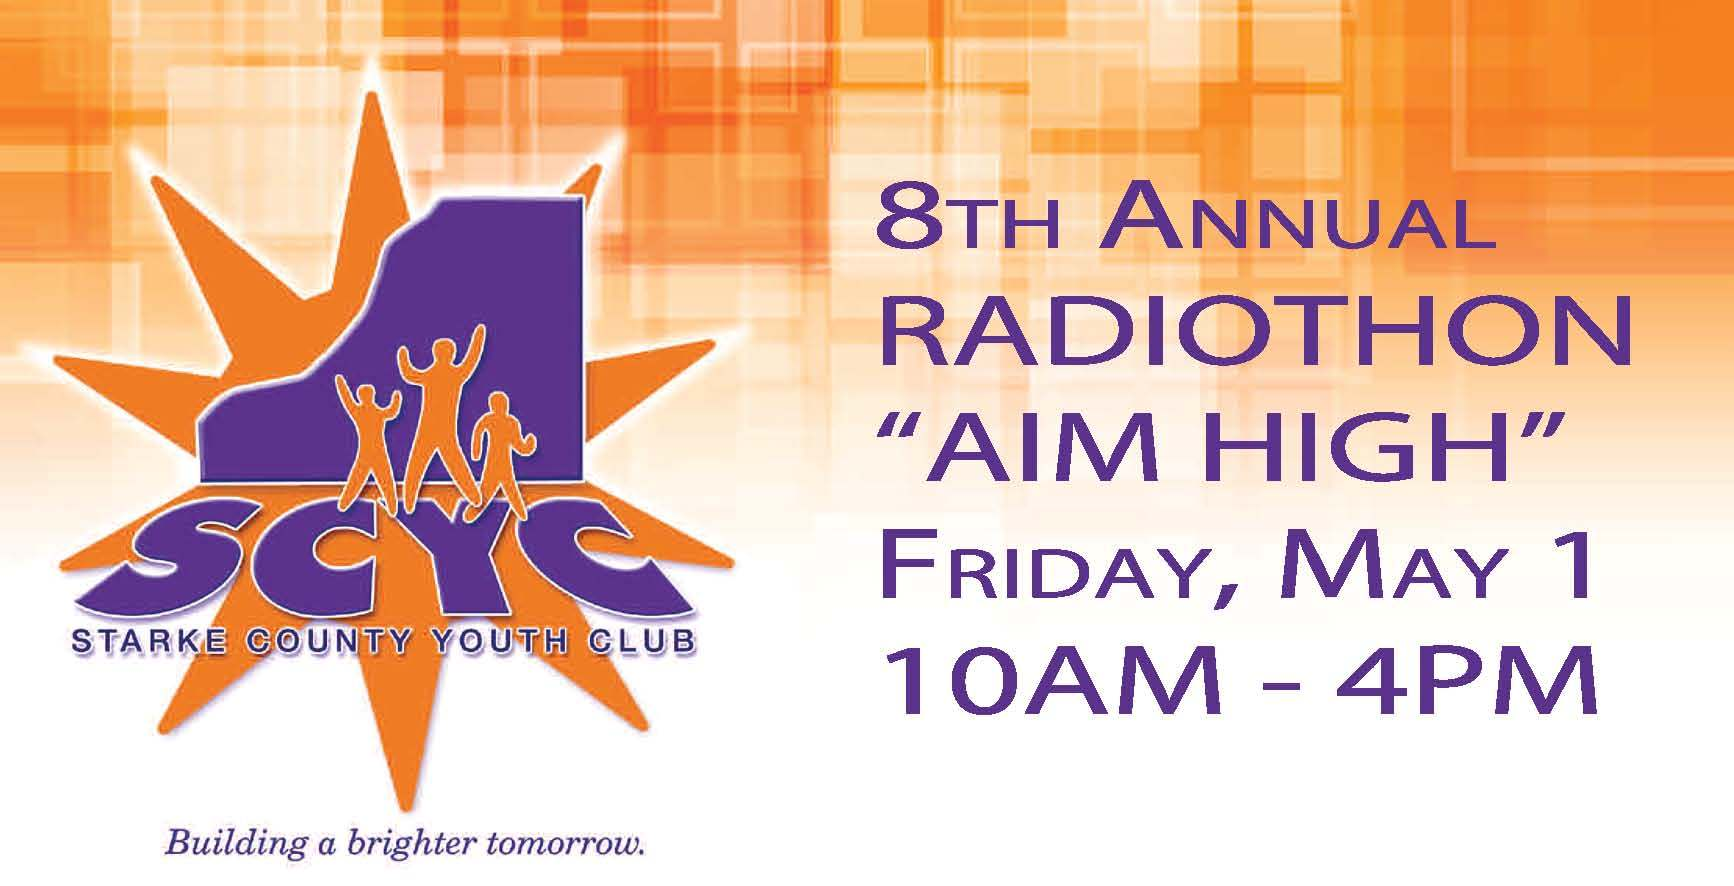 8th Annual Radiothon